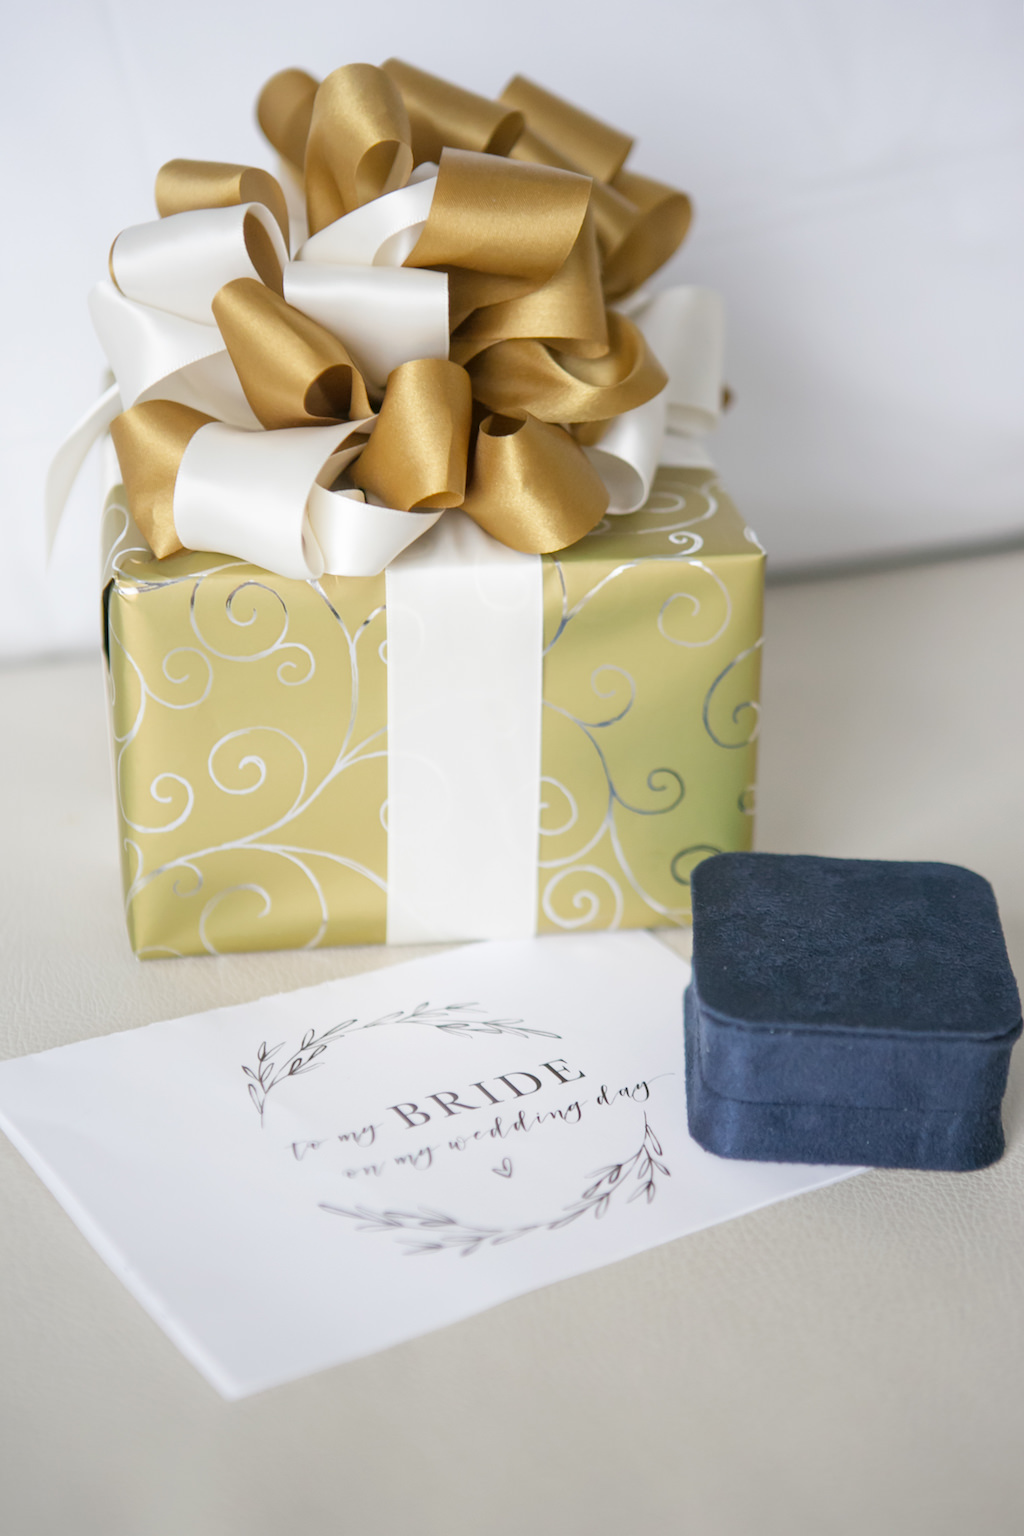 Wedding Gift From Groom with Letter to Bride and Blue Ring Box